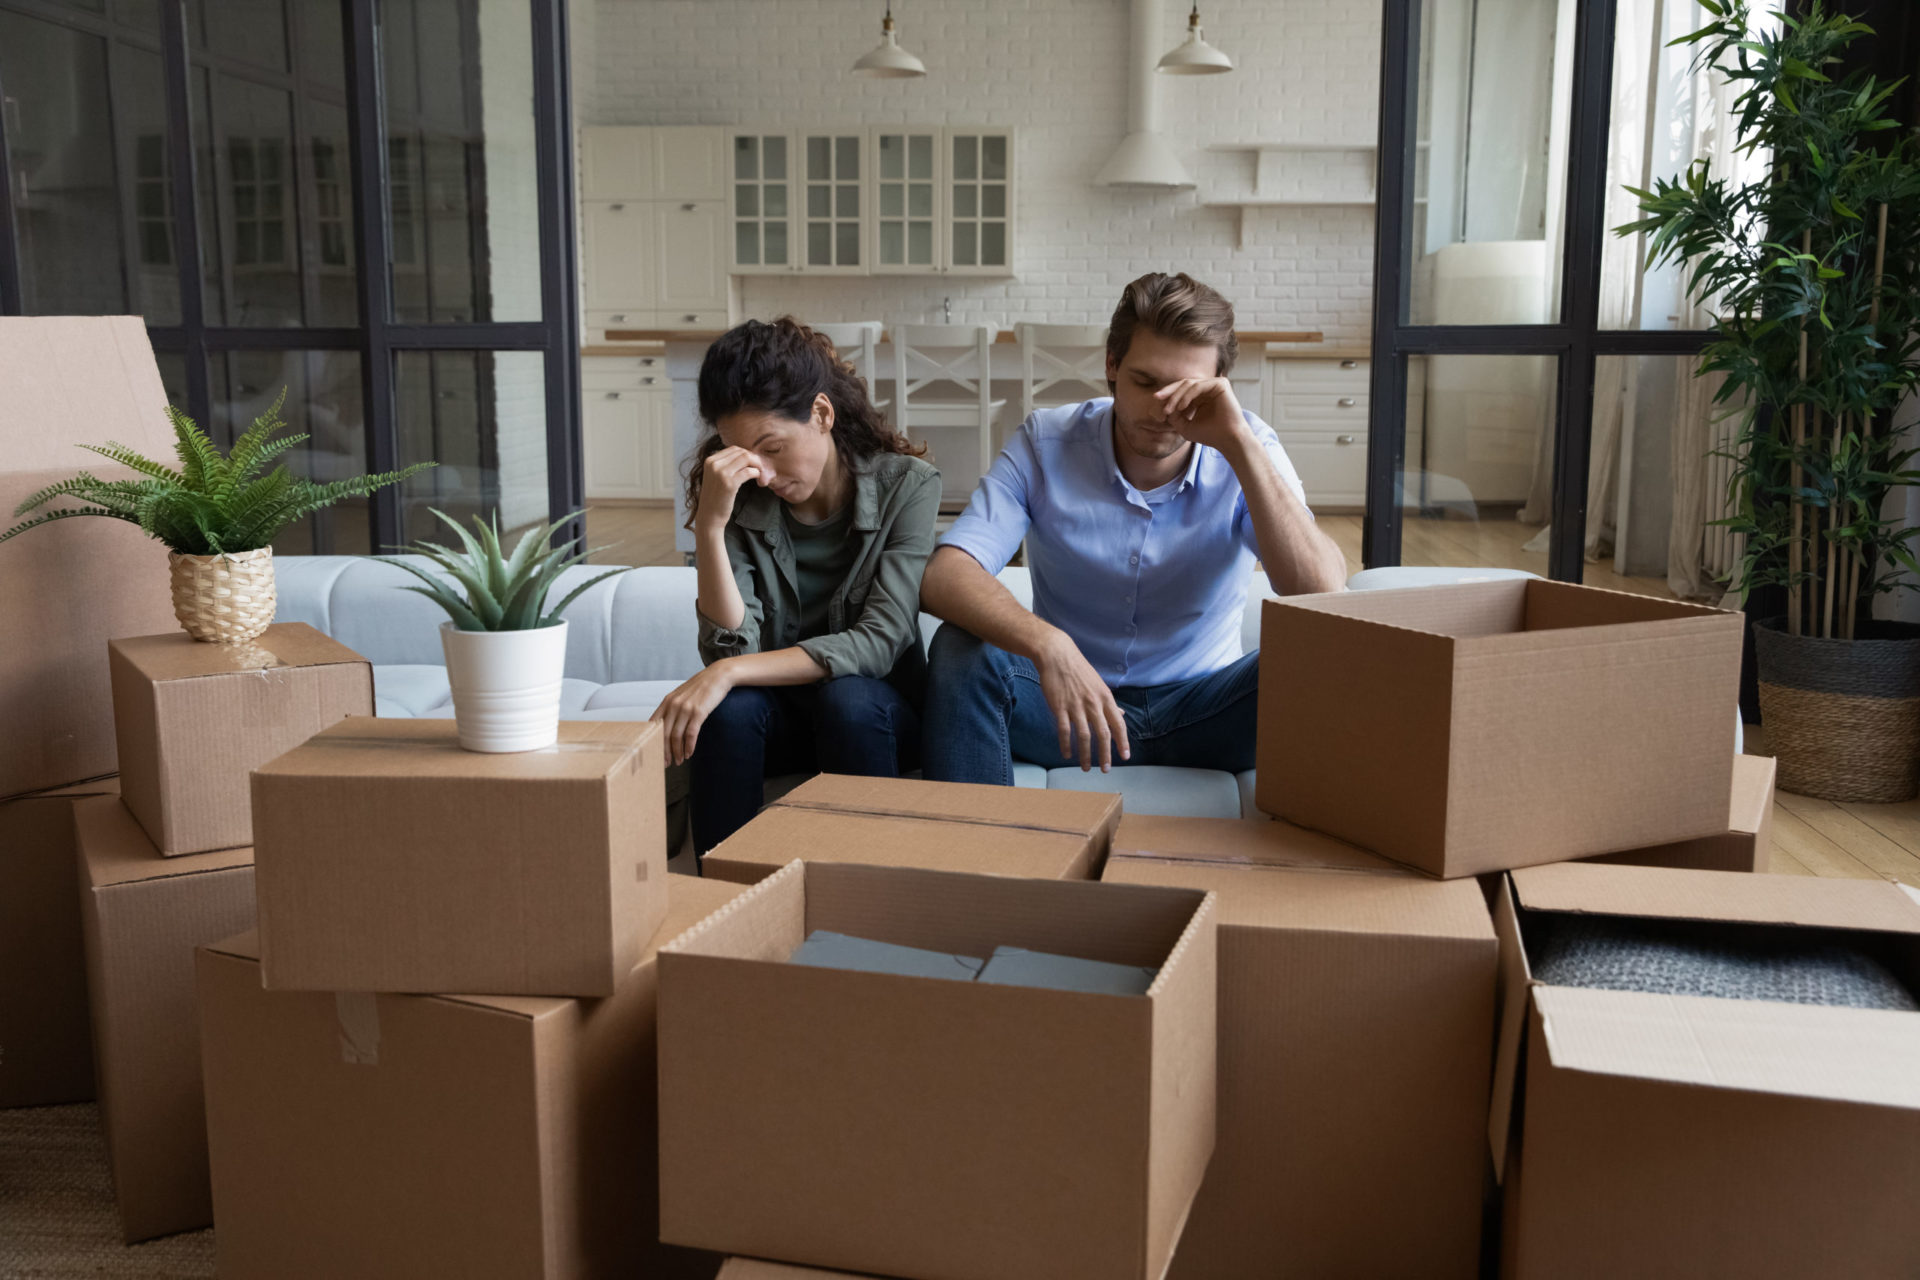 Tired unhappy young Caucasian couple sit on sofa in new living room feel unmotivated unpacking. Upset stressed millennial man and woman have fight quarrel unboxing packages relocating moving.